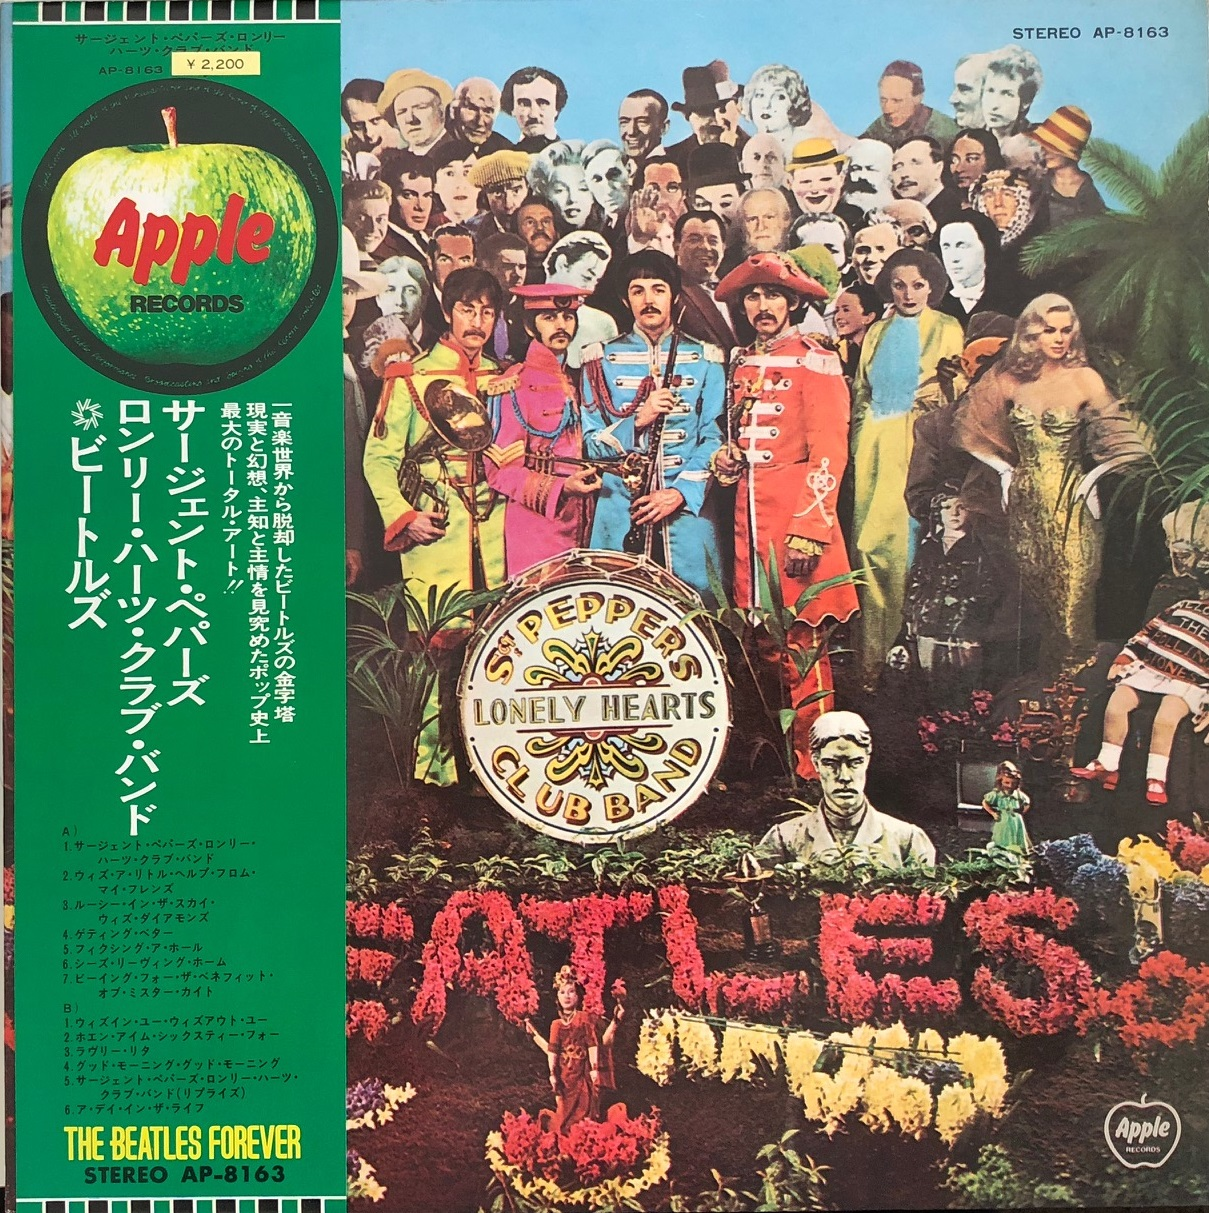 BEATLES / SGT. PEPPERS LONELY HEARTS CLUB BAND